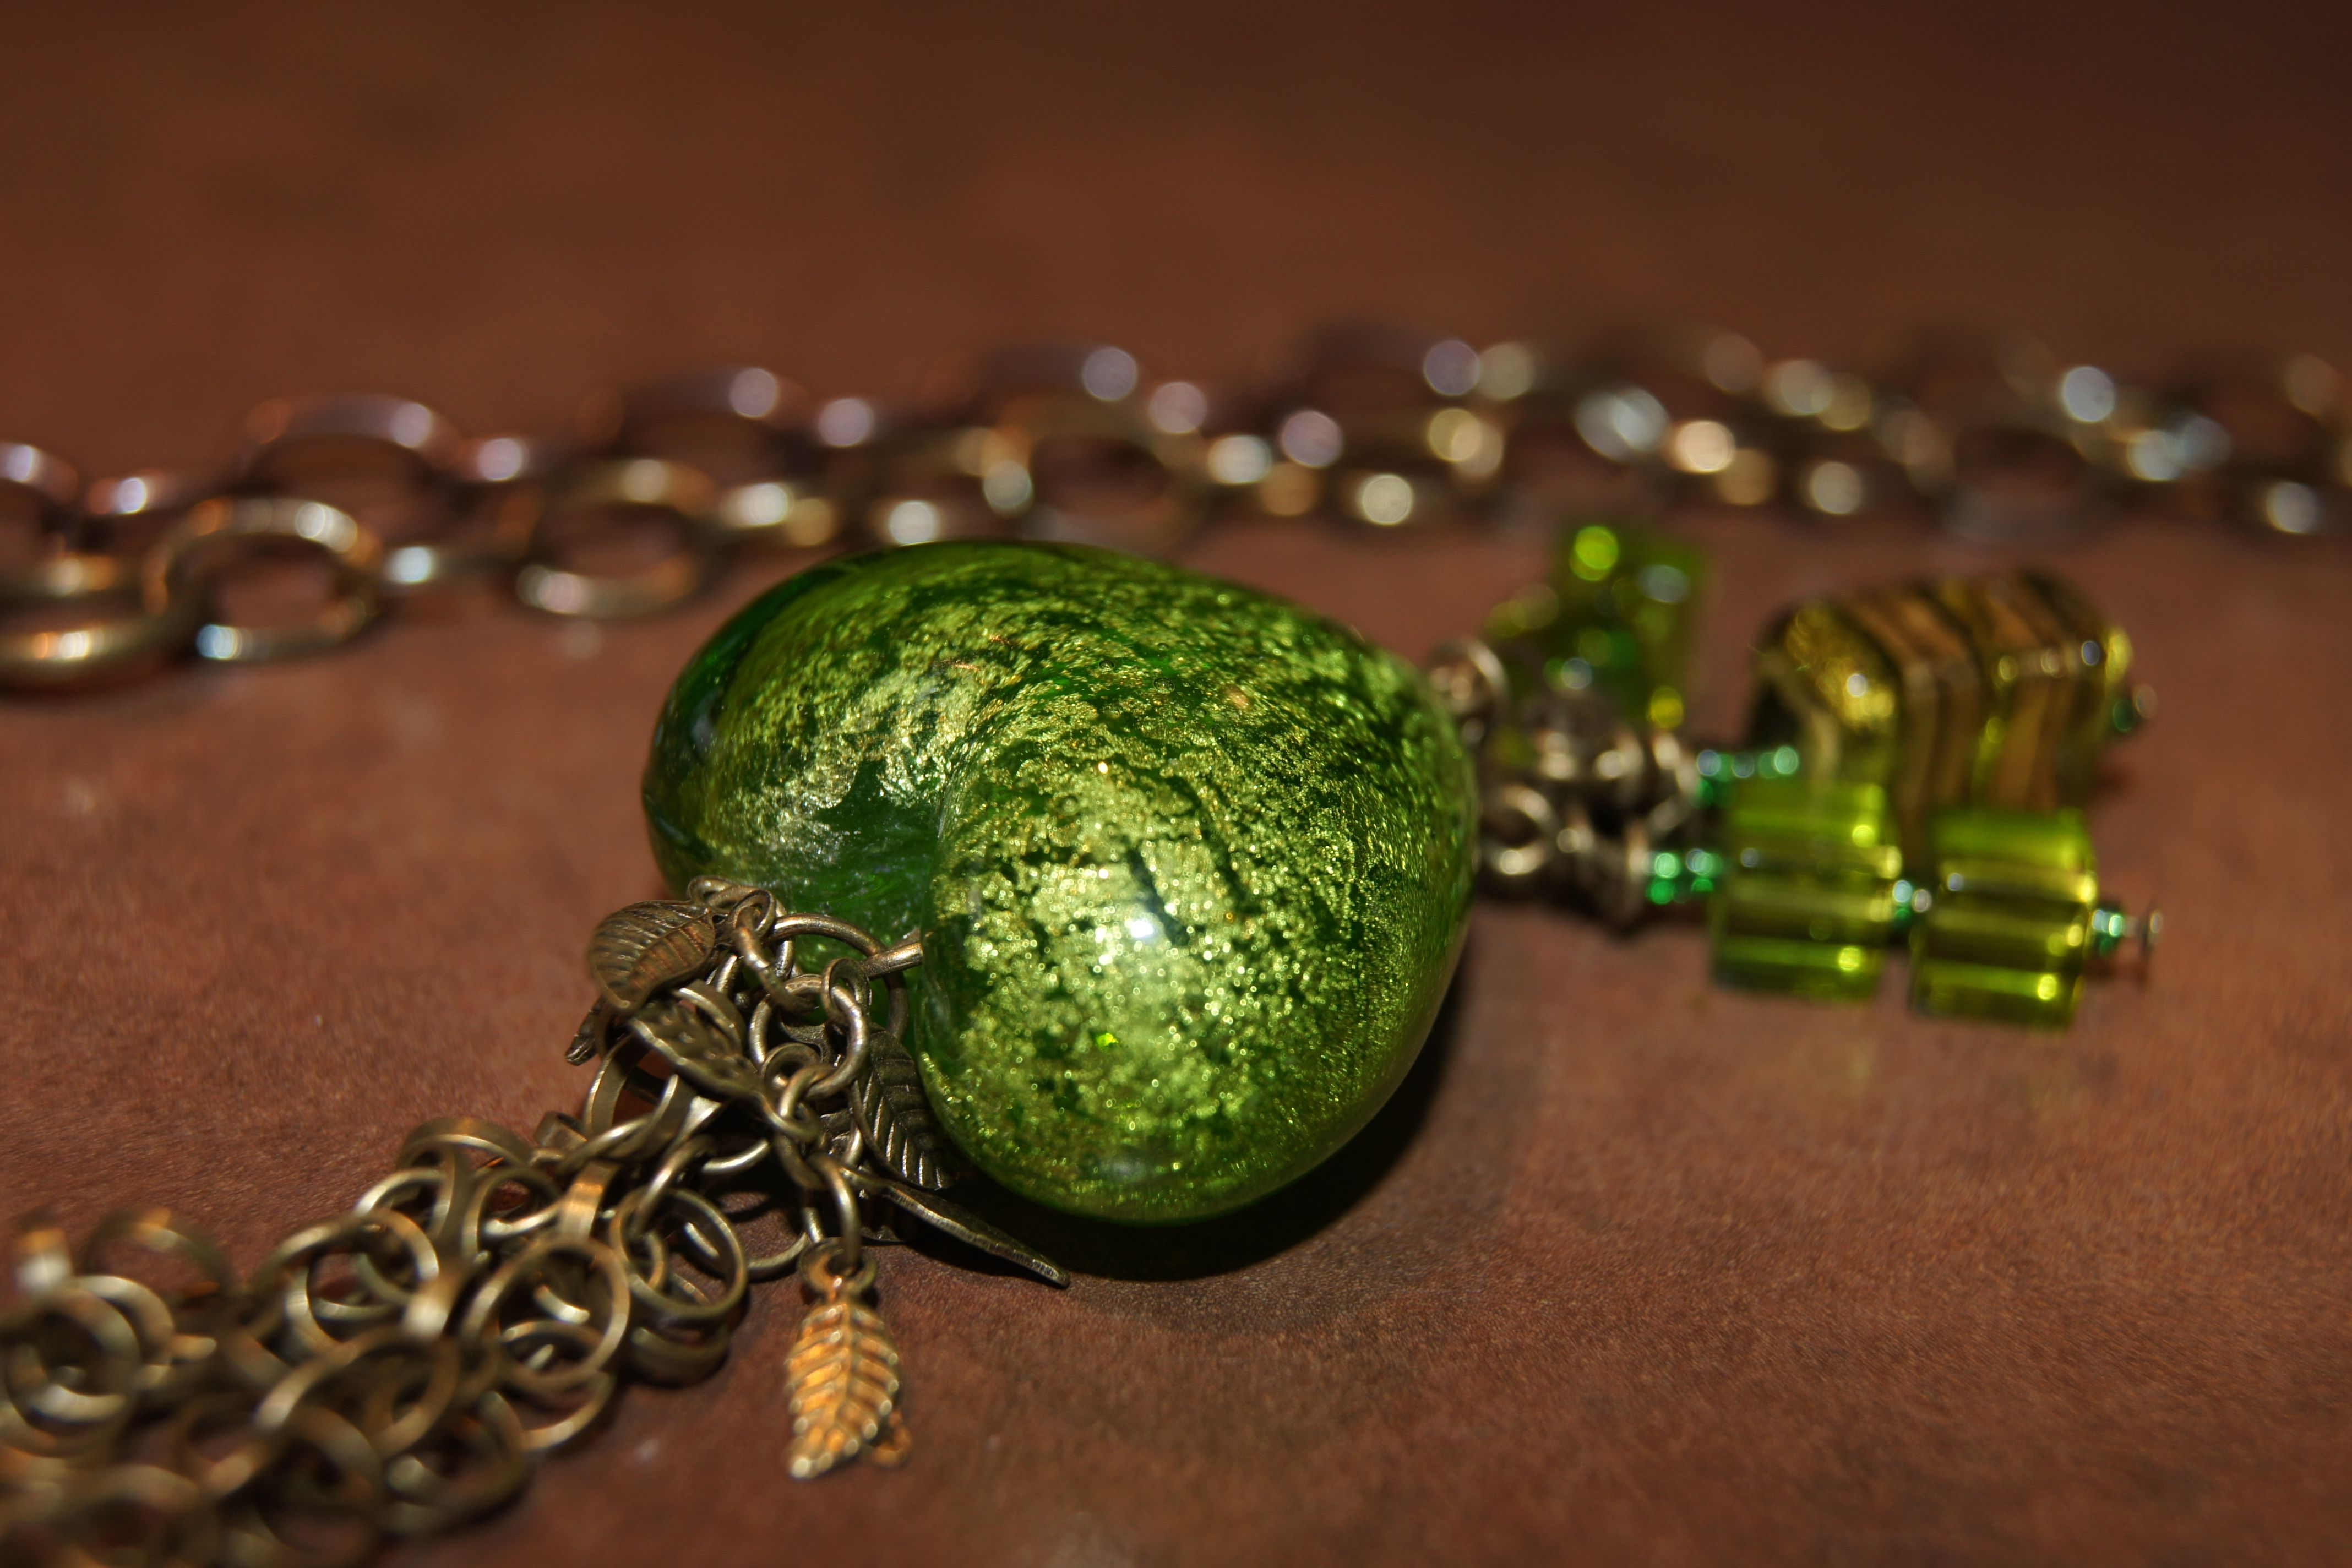 Love working with glass pieces, this apple green heart is beautiful